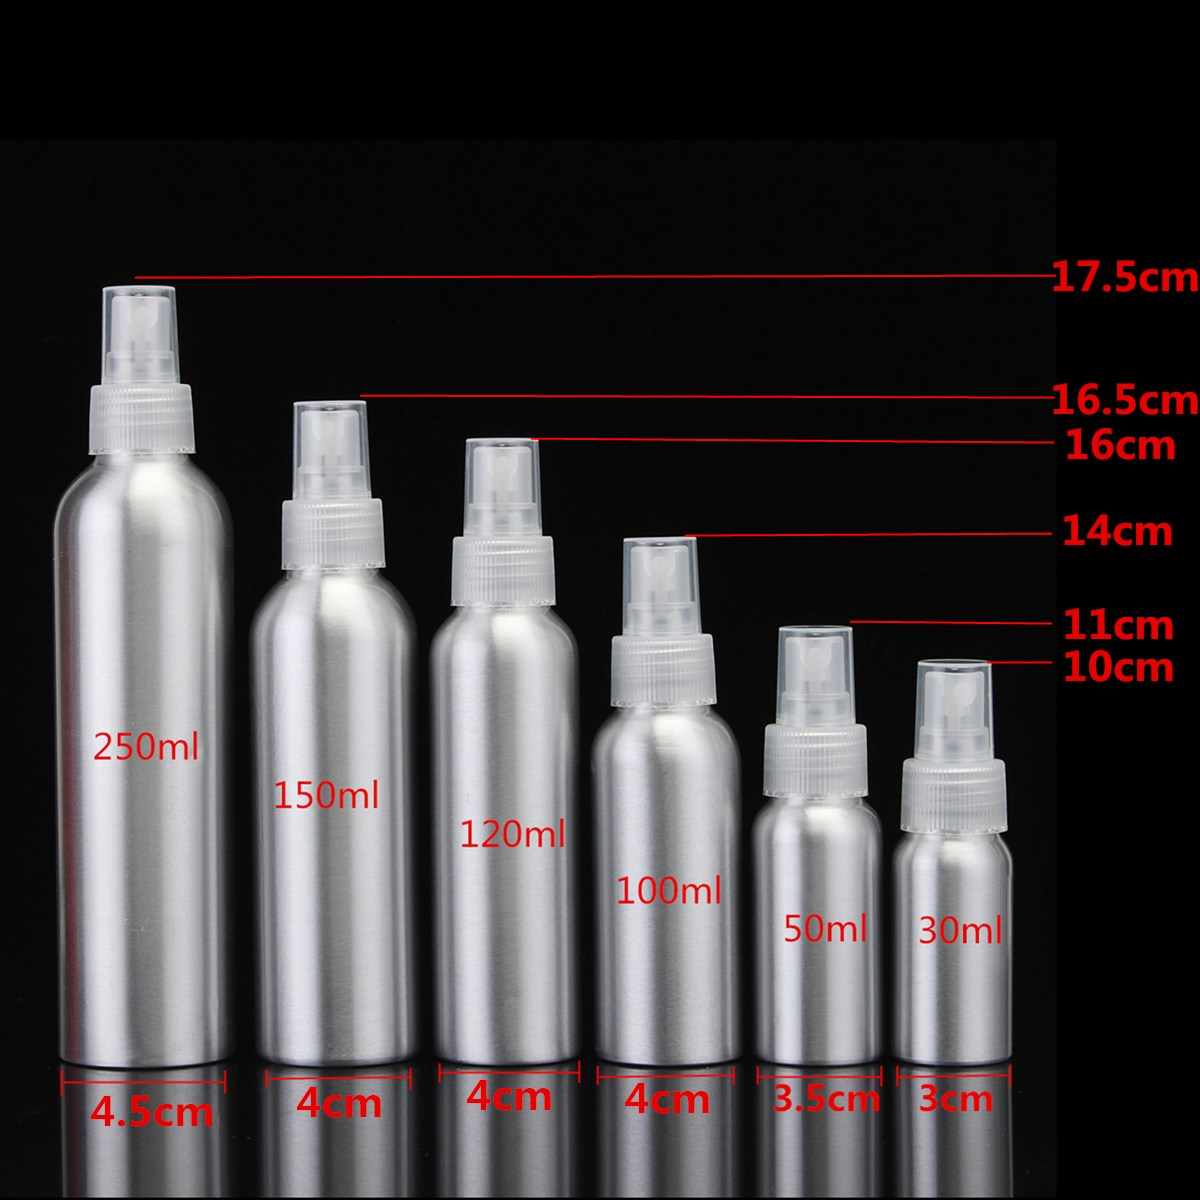 30/50/100/120/150/250ml Aluminium Spray Bottle 100ml Fine Mist Atomiser Empty Perfume Spray Bottles Cosmetic Packaging Container 6pcs 1oz 30ml amber glass spray bottle w black fine mist sprayer refillable essential oil bottles empty cosmetic containers